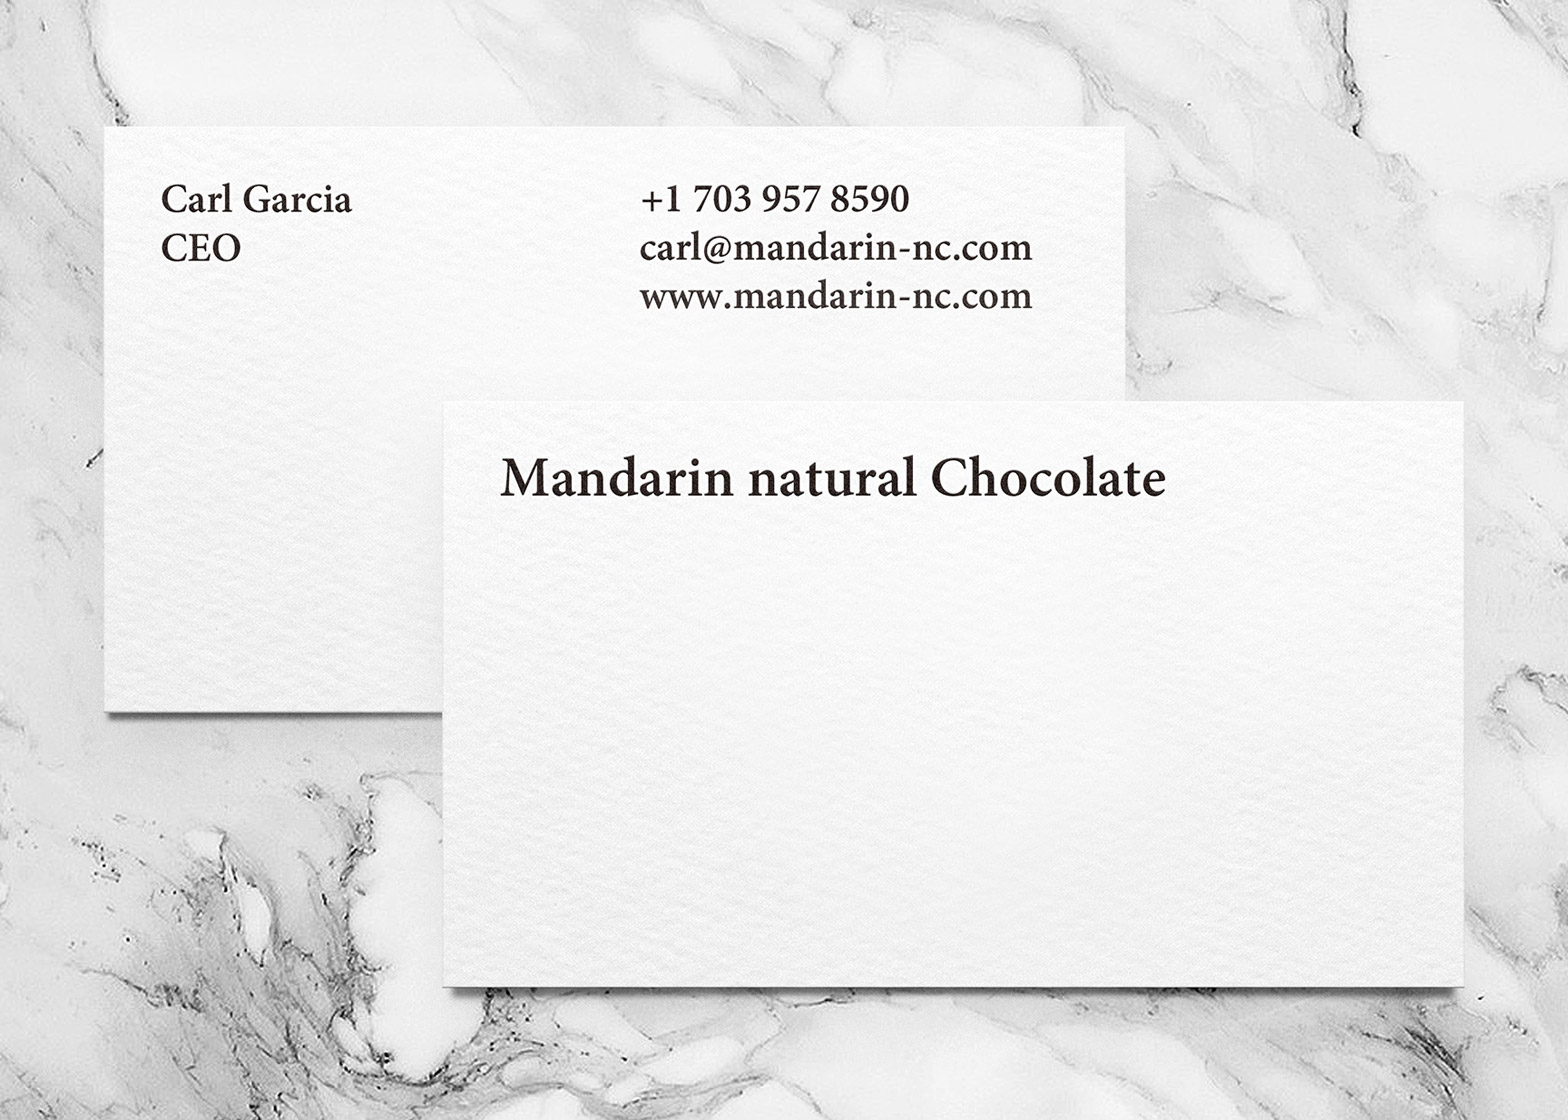 mandarin-natural-chocolate-yuta-takahashi-branding-packaging-design_dezeen_1568_11